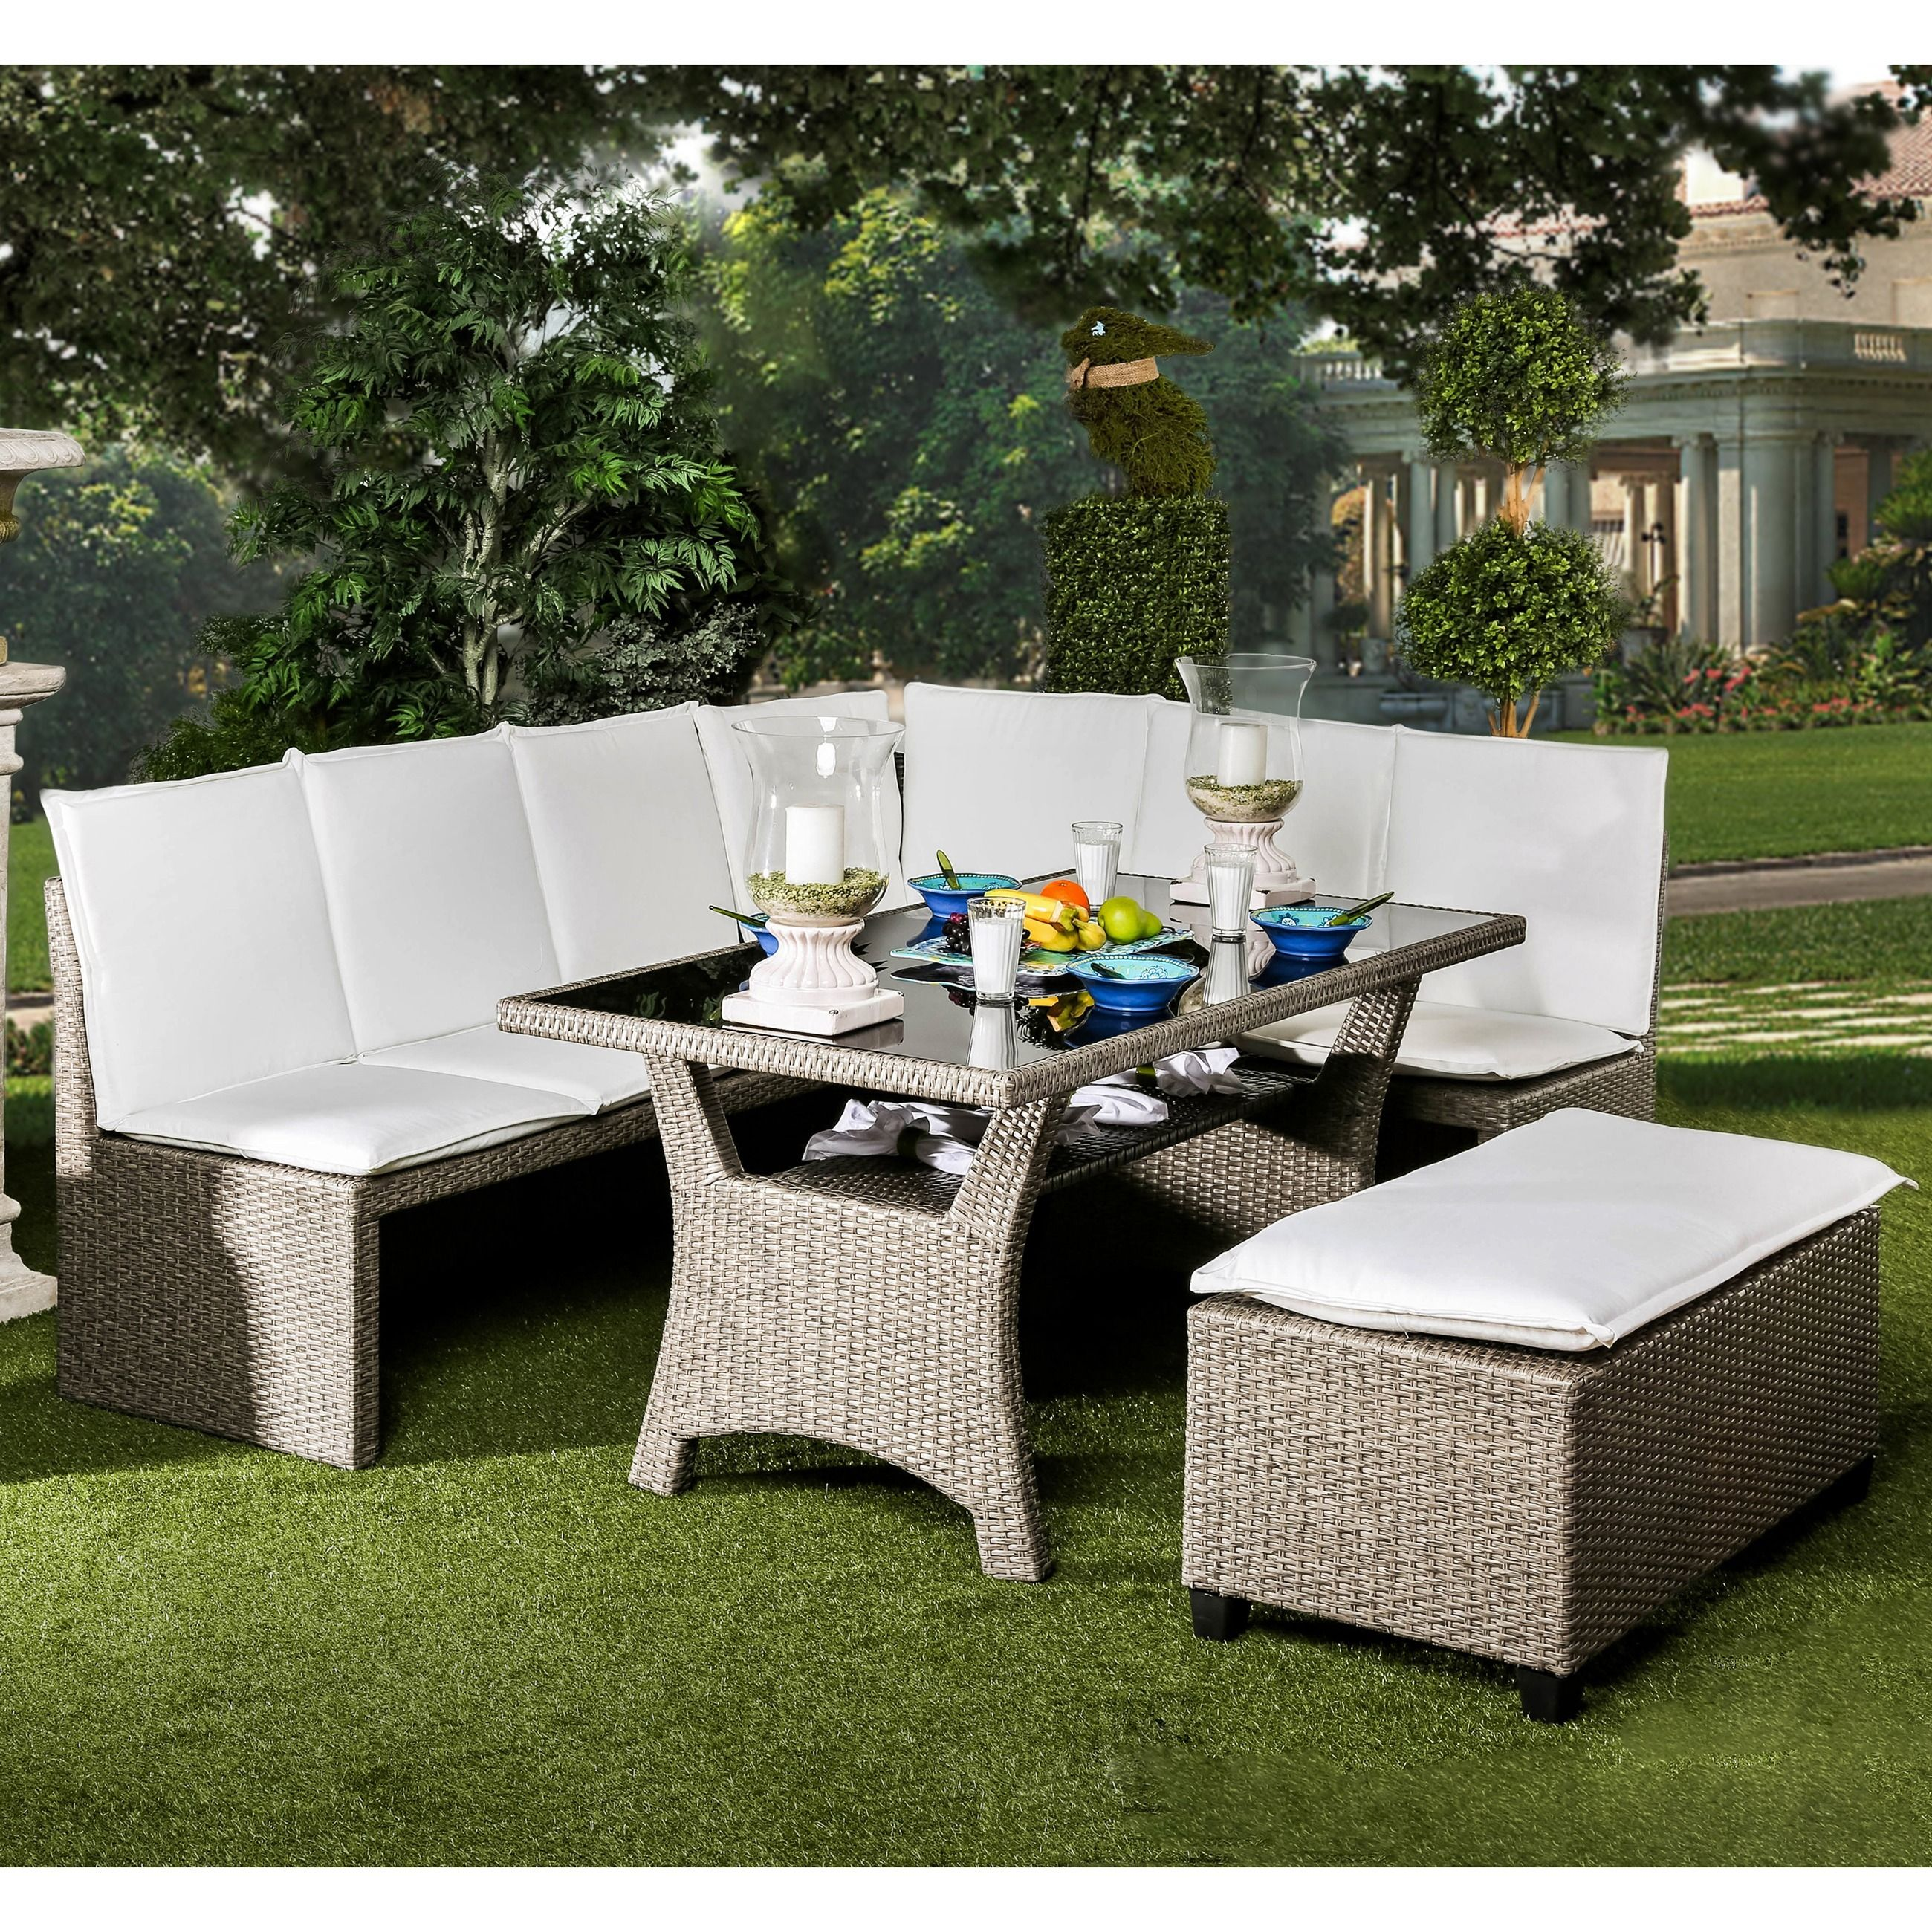 Furniture of America Stelly Grey 3 piece Outdoor Dining Set by